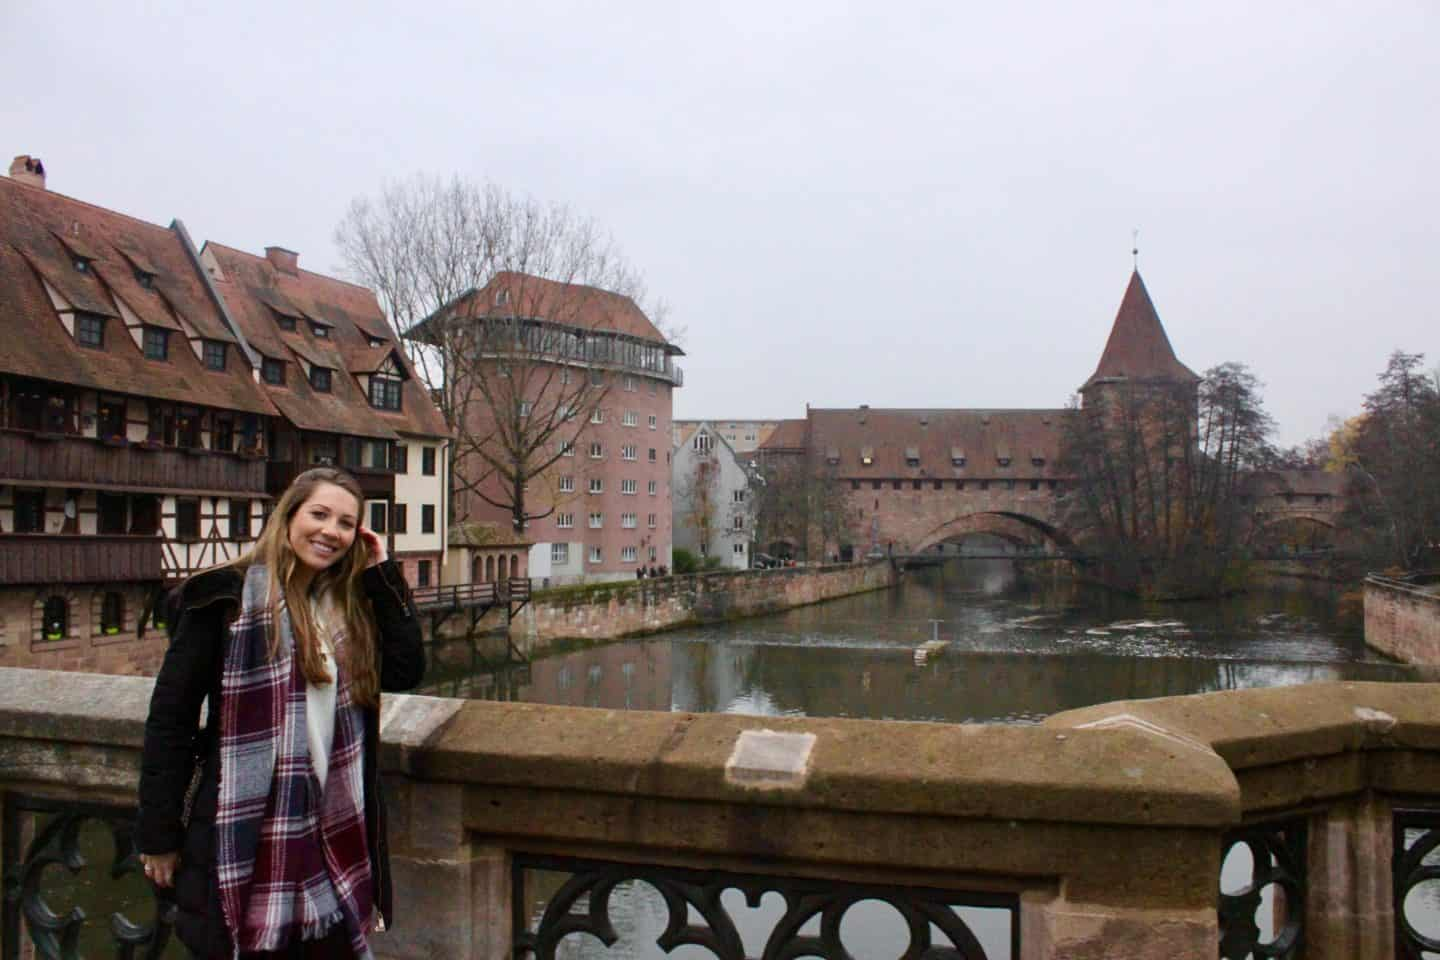 Exploring Nuremberg's medieval town centre